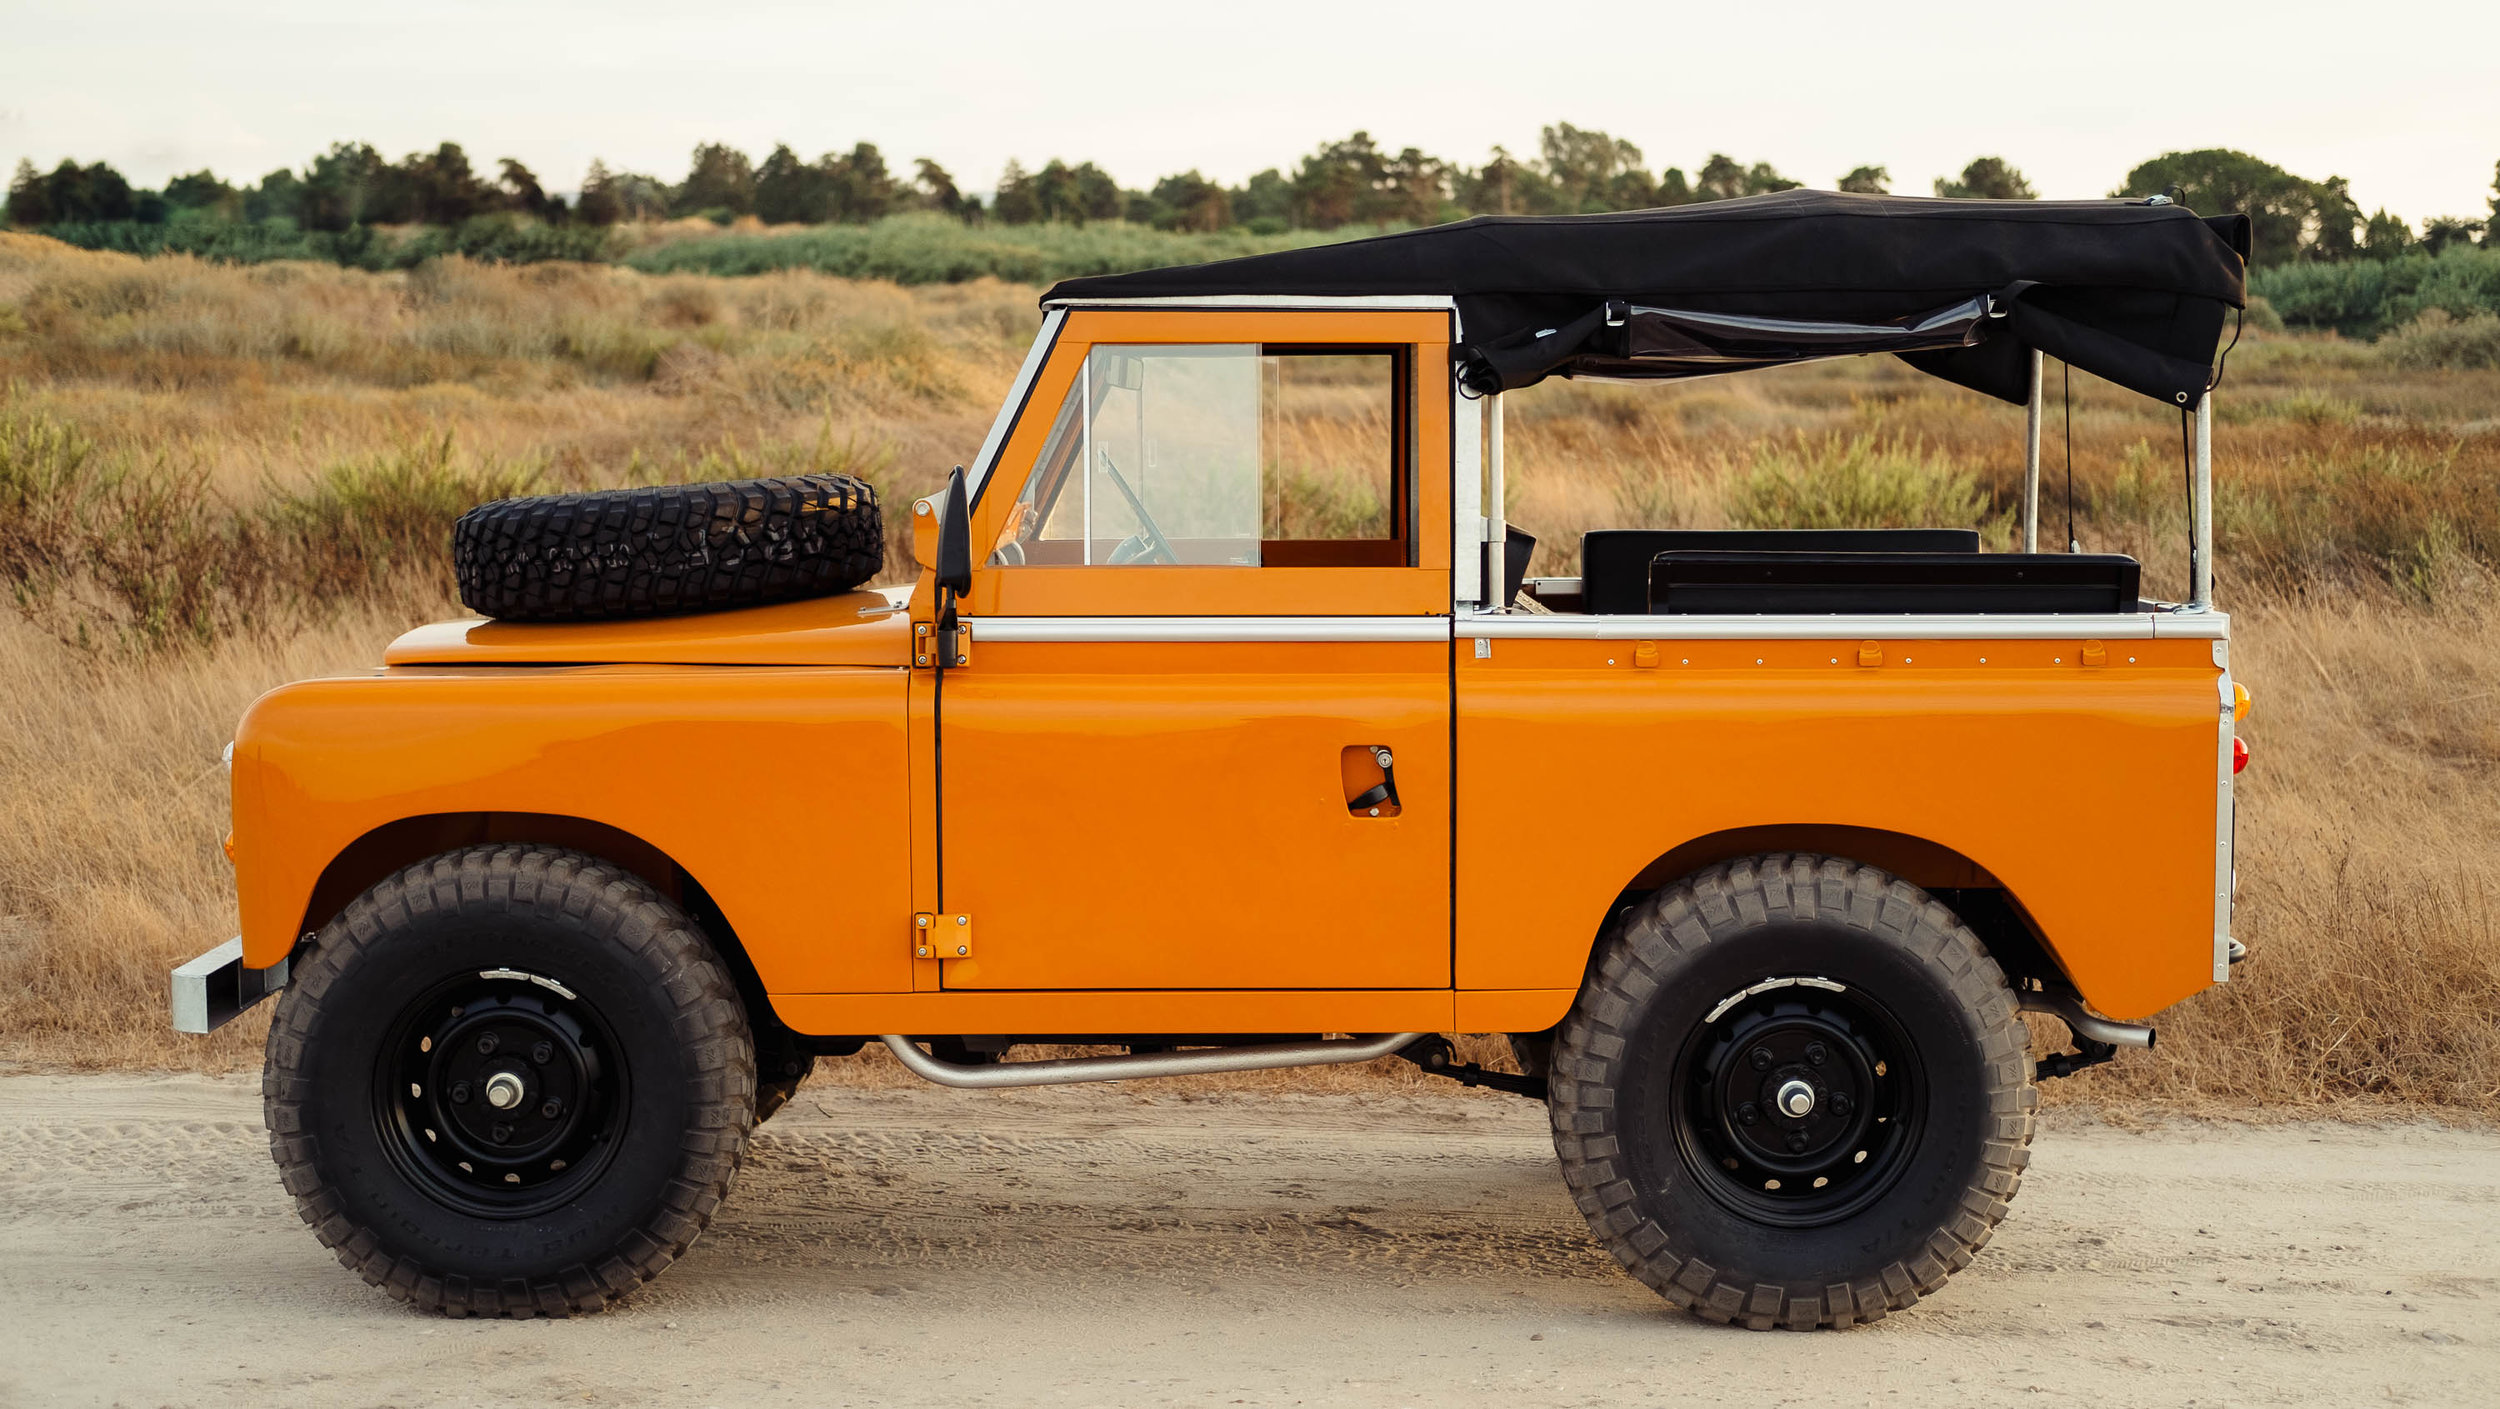 Coolnvintage Land Rover SIII (117 of 137).jpg